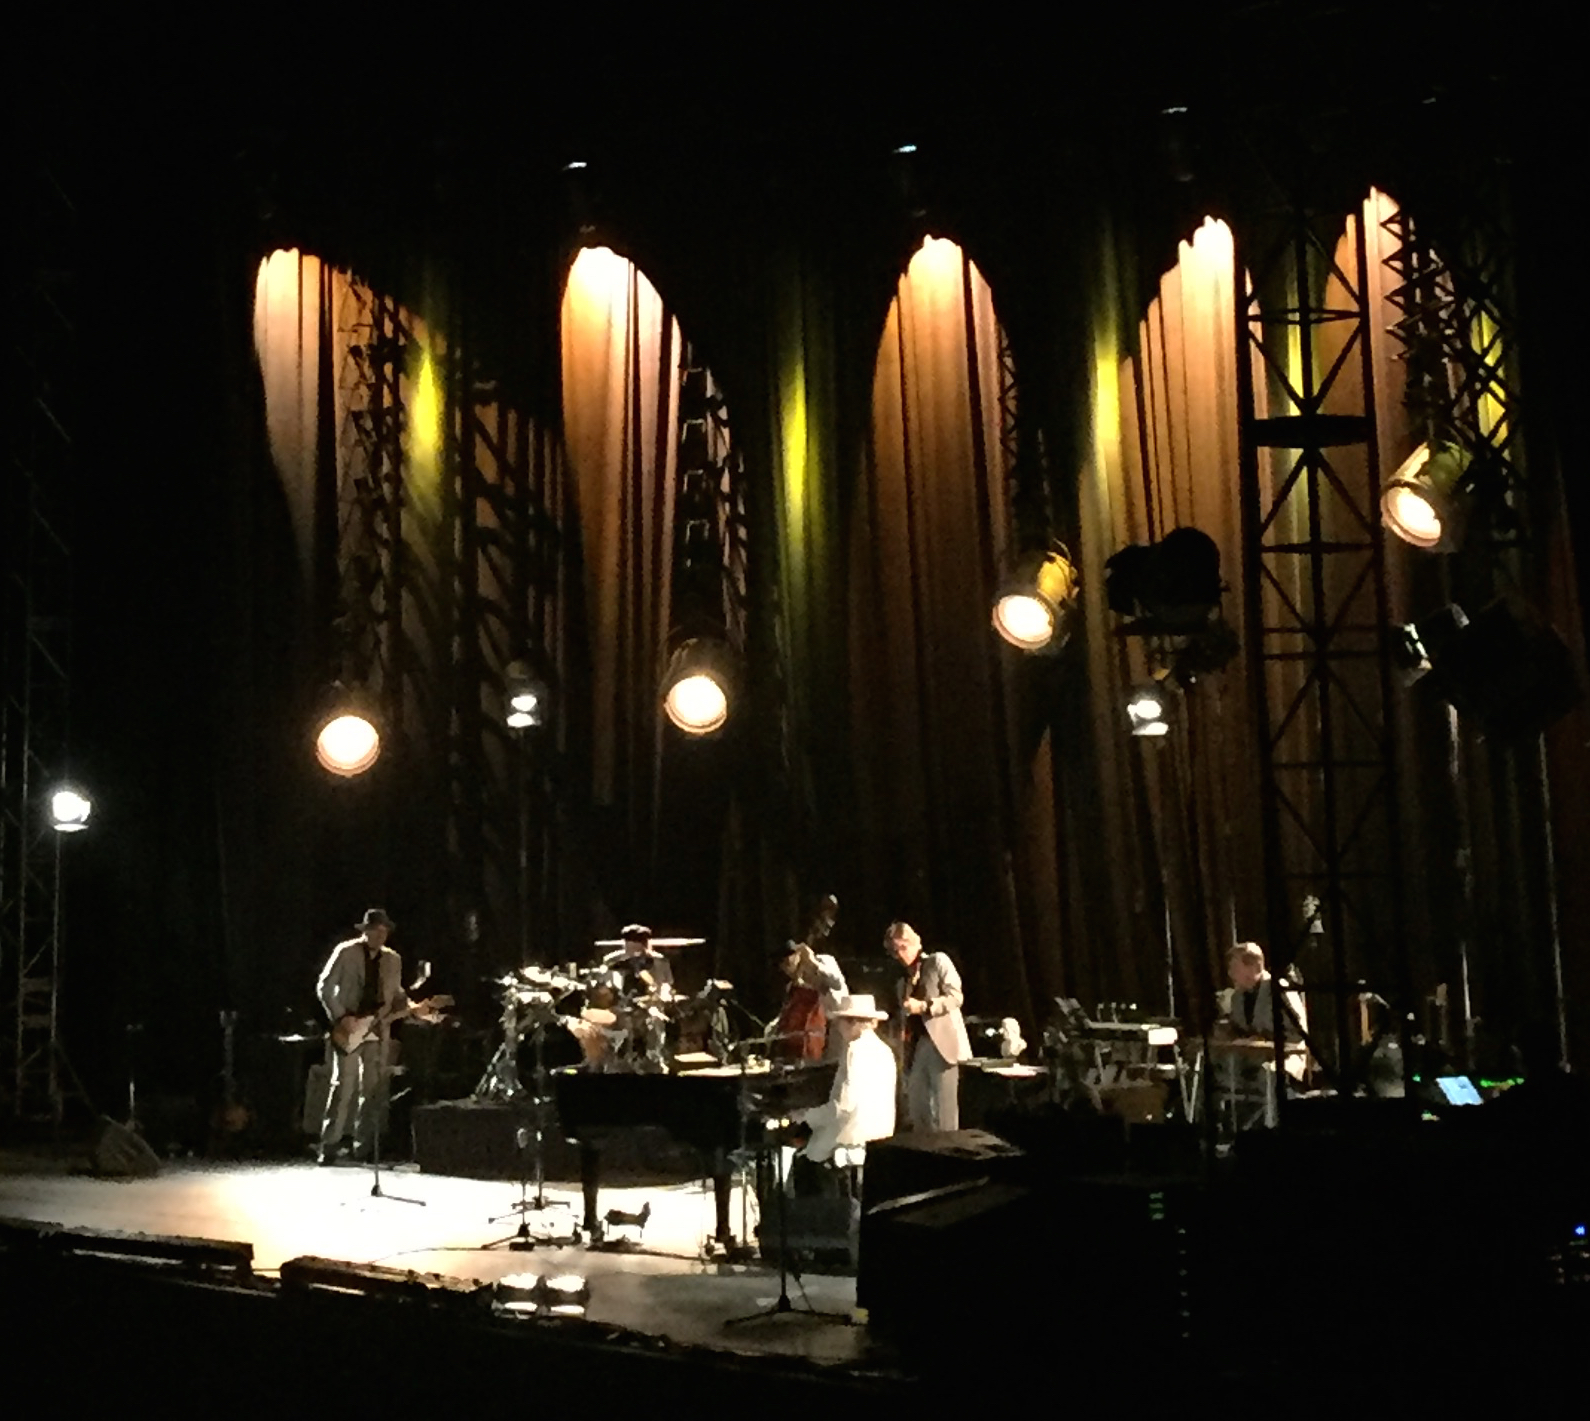 Review, videos & photos: Bob Dylan croons Sinatra in subdued Greek Theatre gig